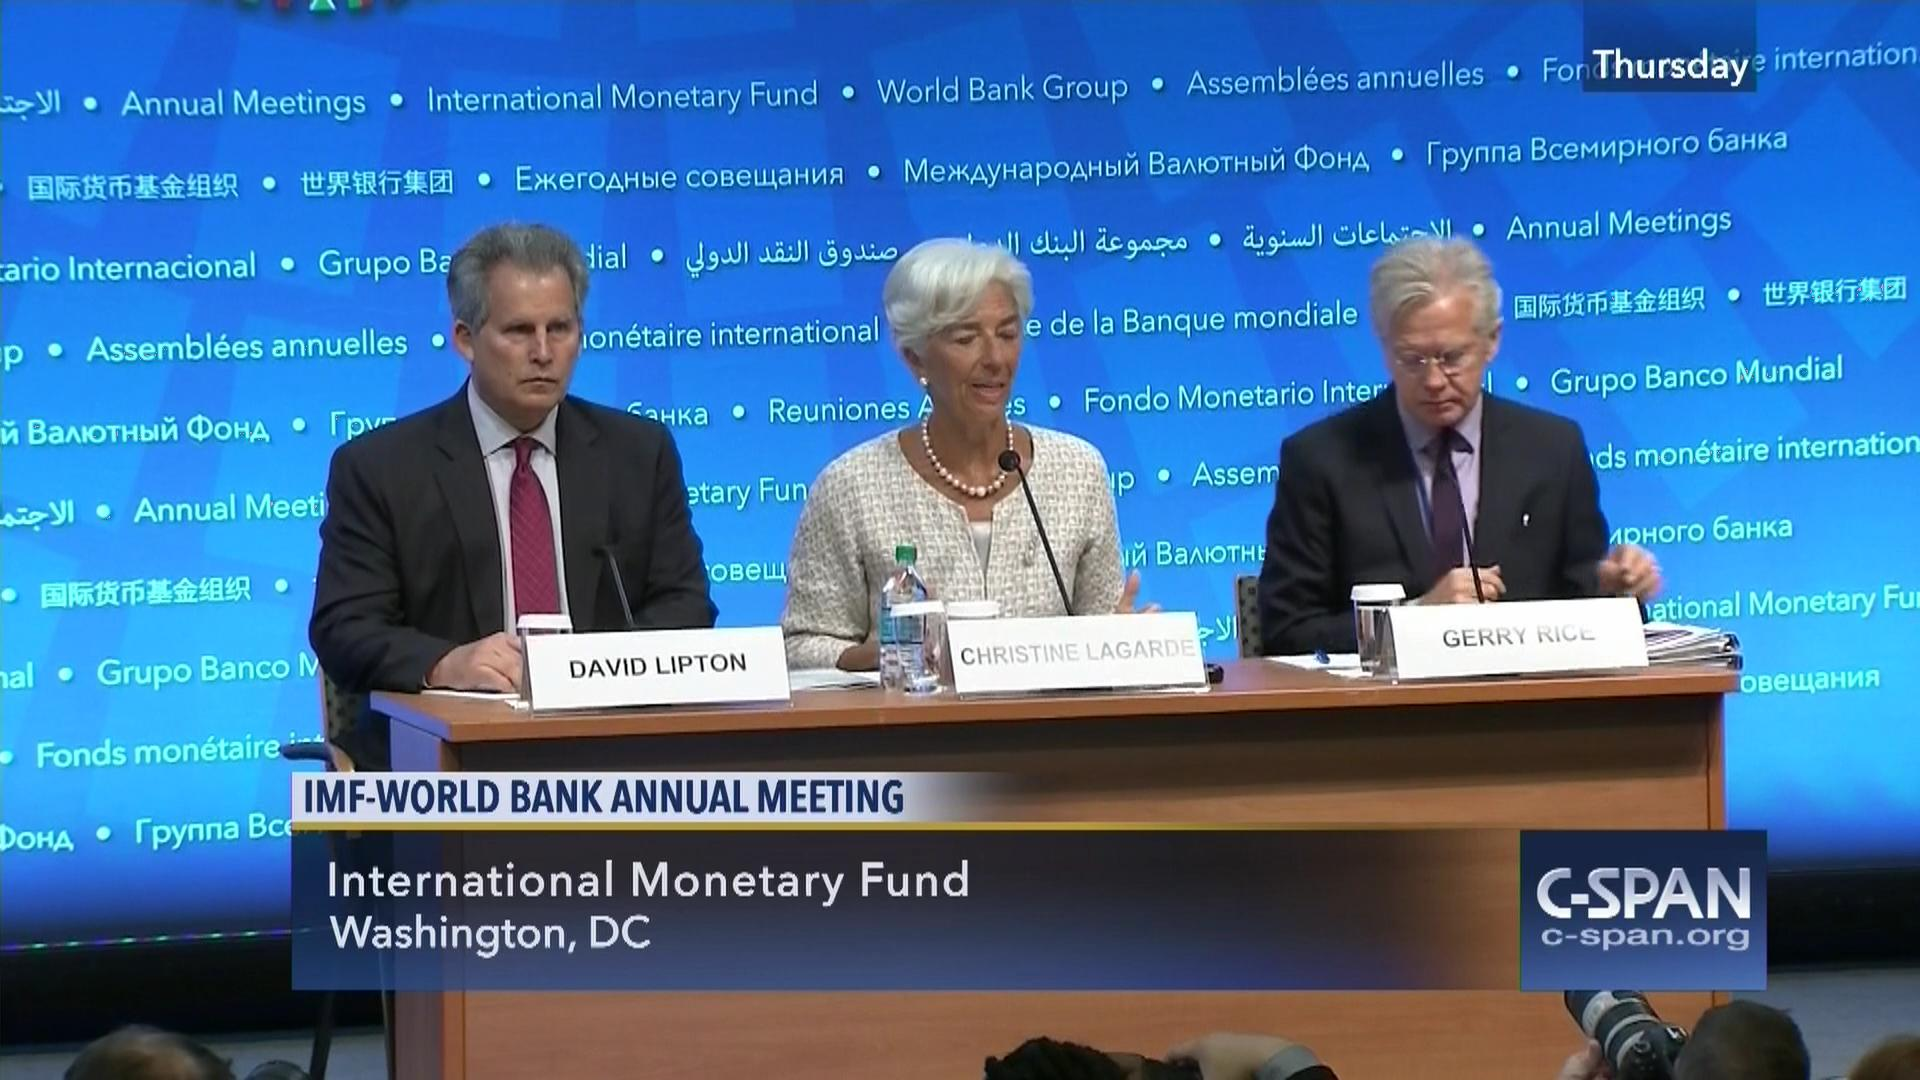 Christine lagarde jim yong kim hold news conference oct 6 2016 christine lagarde jim yong kim hold news conference oct 6 2016 c span sciox Images